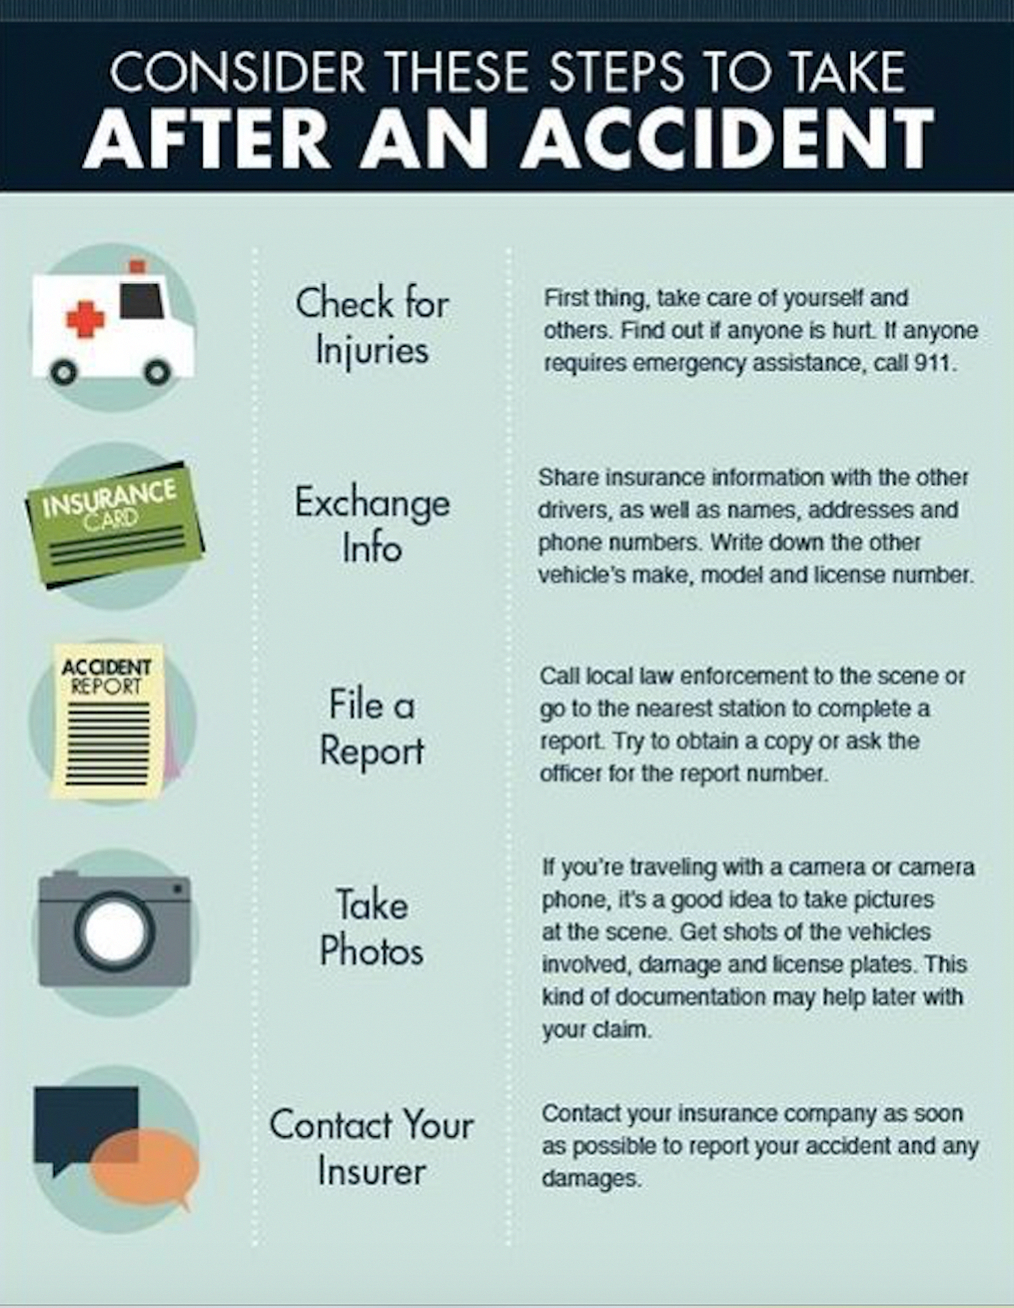 In the case of an accident, remember these 5 easy steps